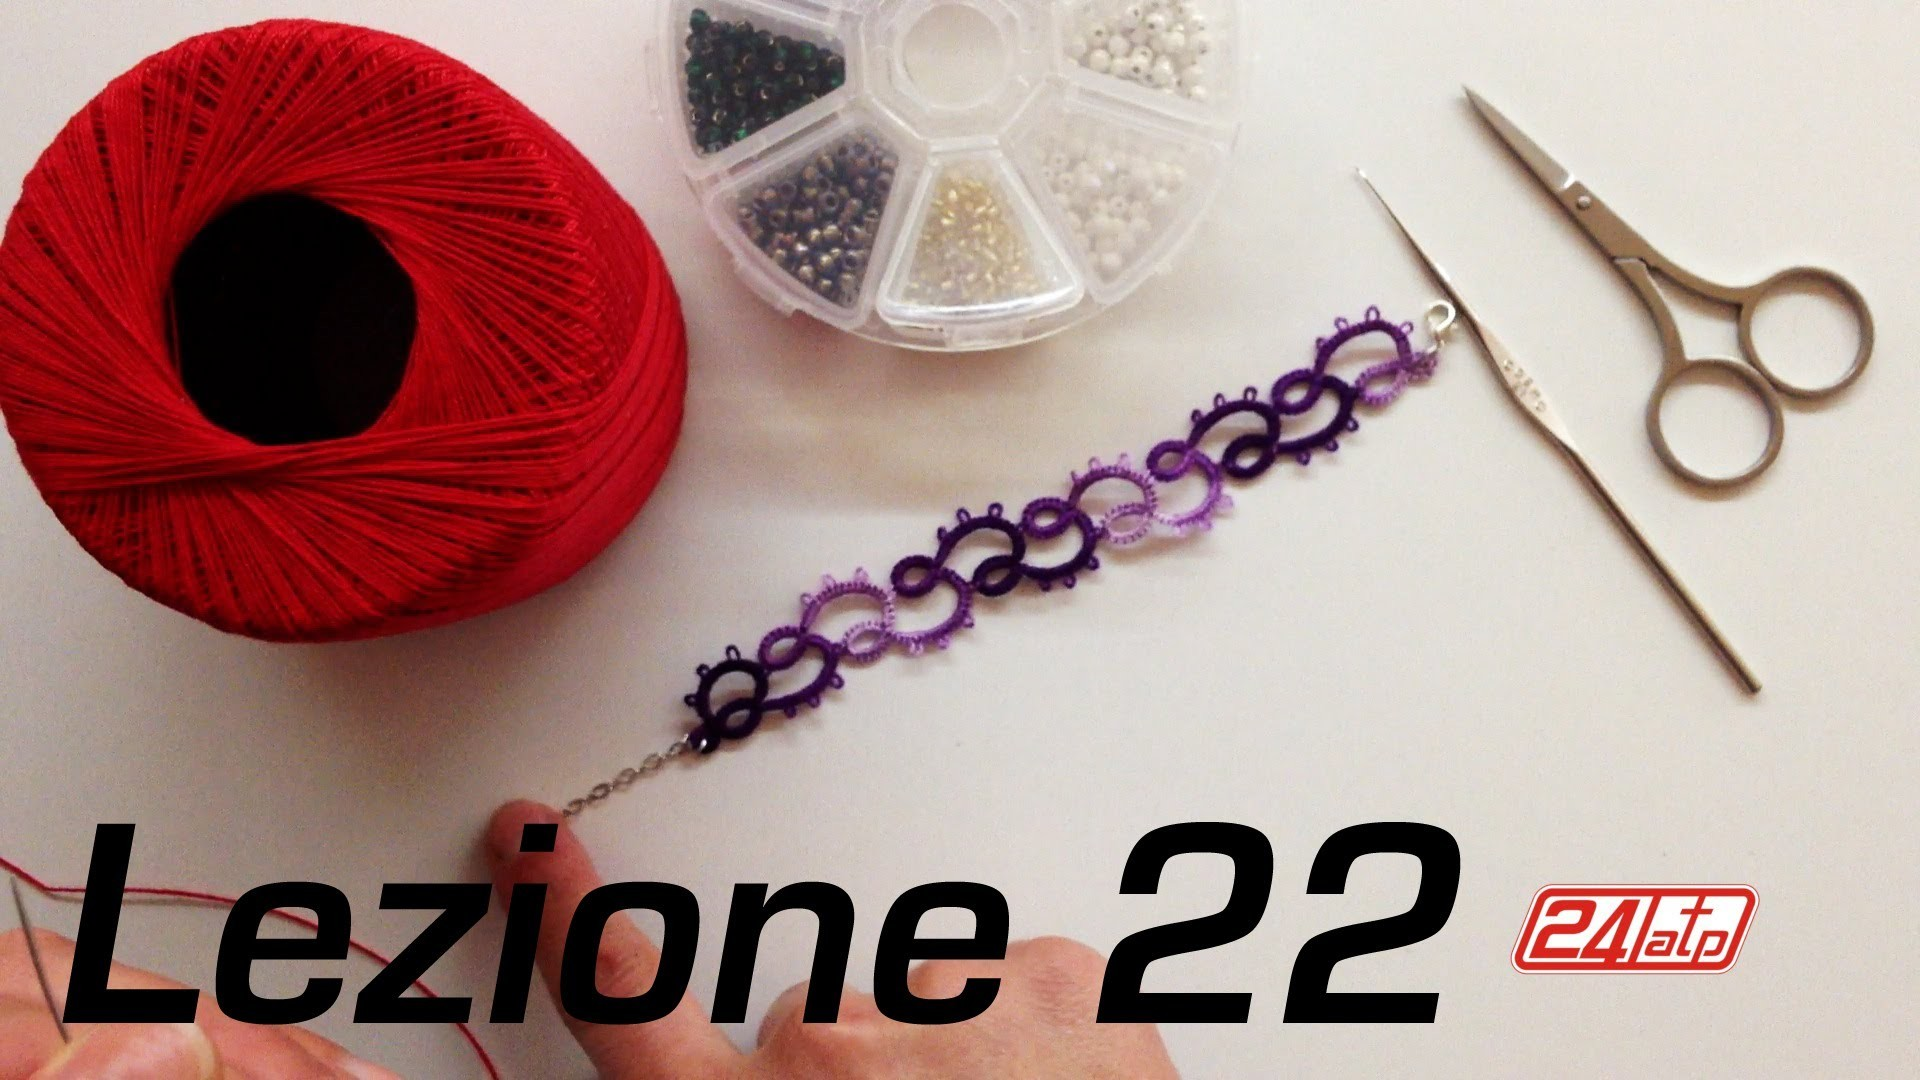 Chiacchierino Ad Ago - 22˚ Lezione Bracciale Con Perline Bijoux Tutorial Come Fare Needle Tatting